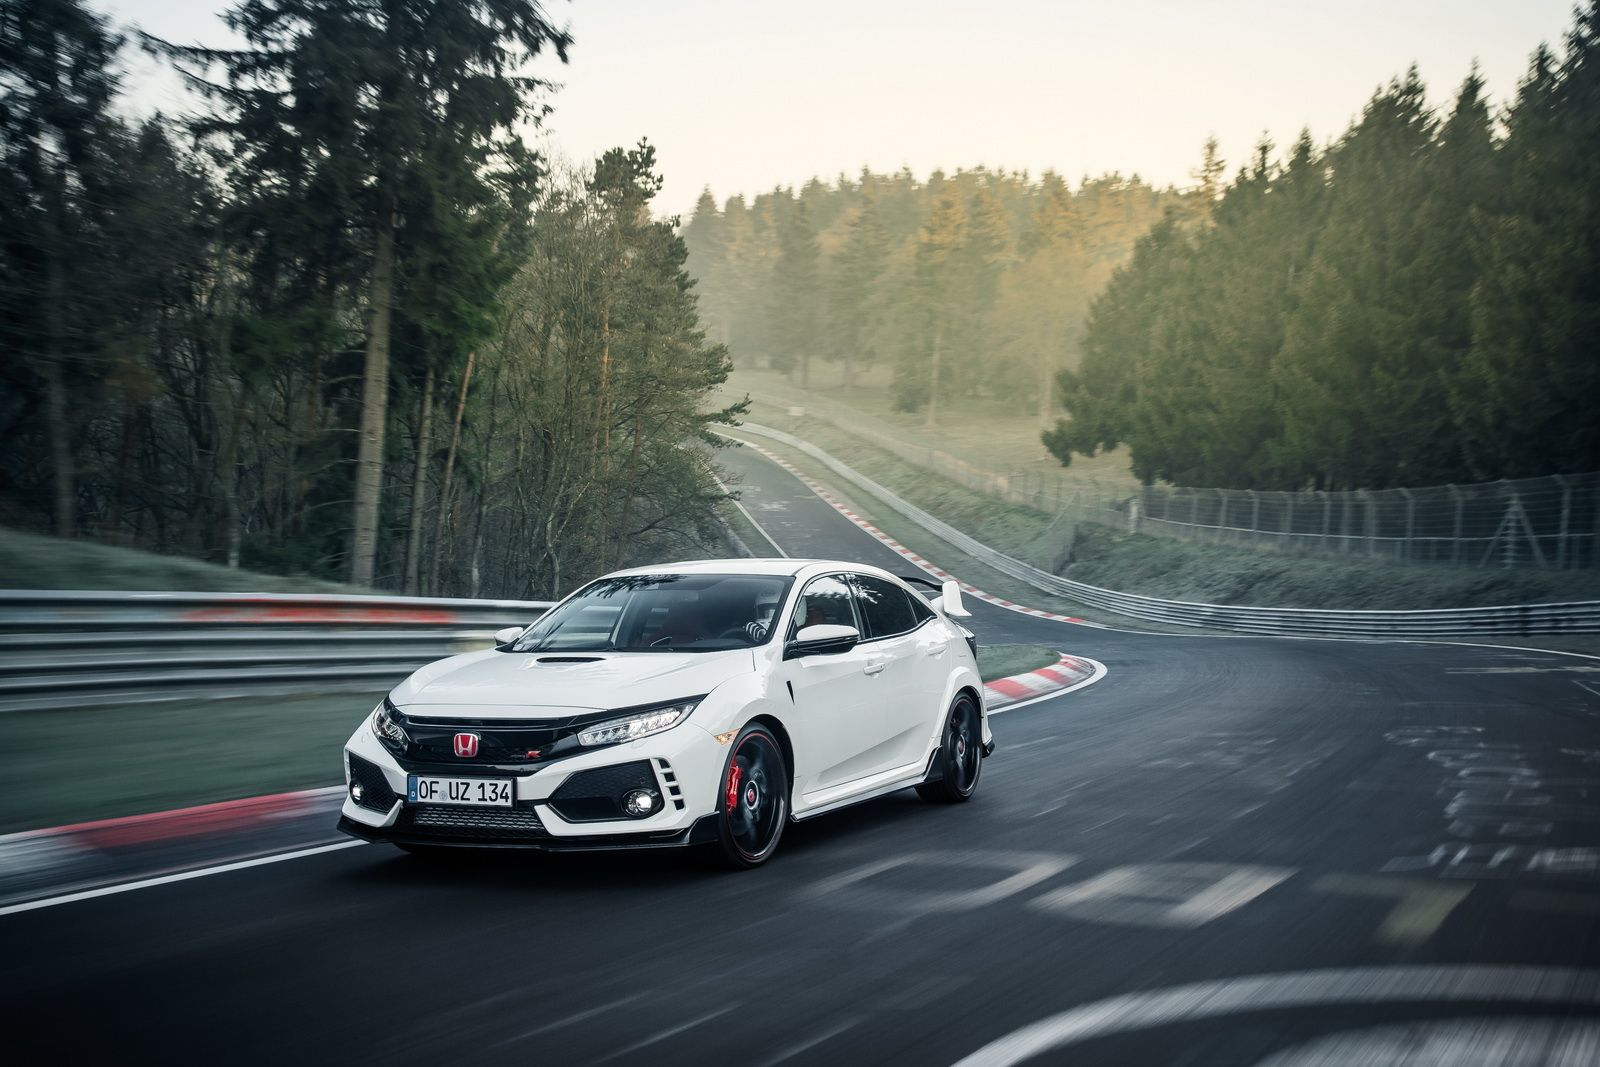 Someone Tried Selling Their 2018 Honda Civic Type R Spot For 85k